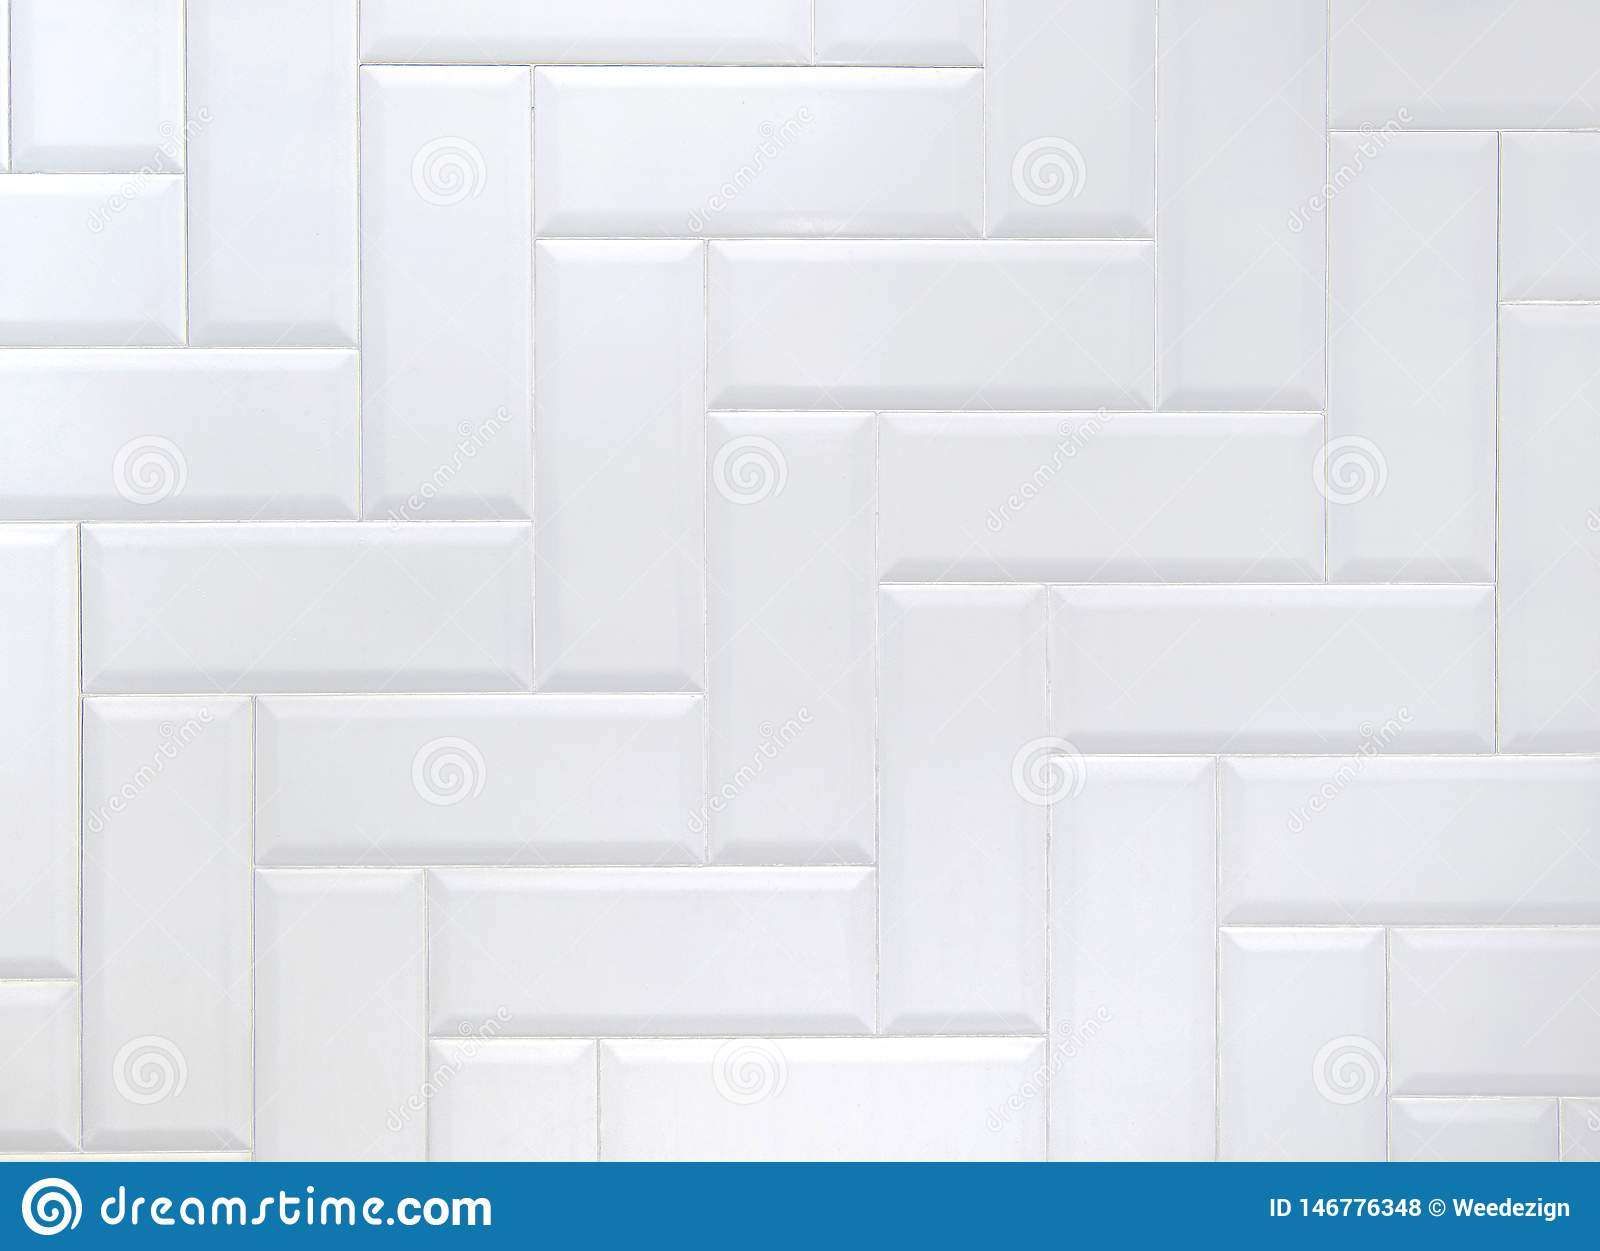 White Ceramic Brick Tile Wall Modern Abstract Texture Background Stock Photo Image Of Stone Architecture 146776348